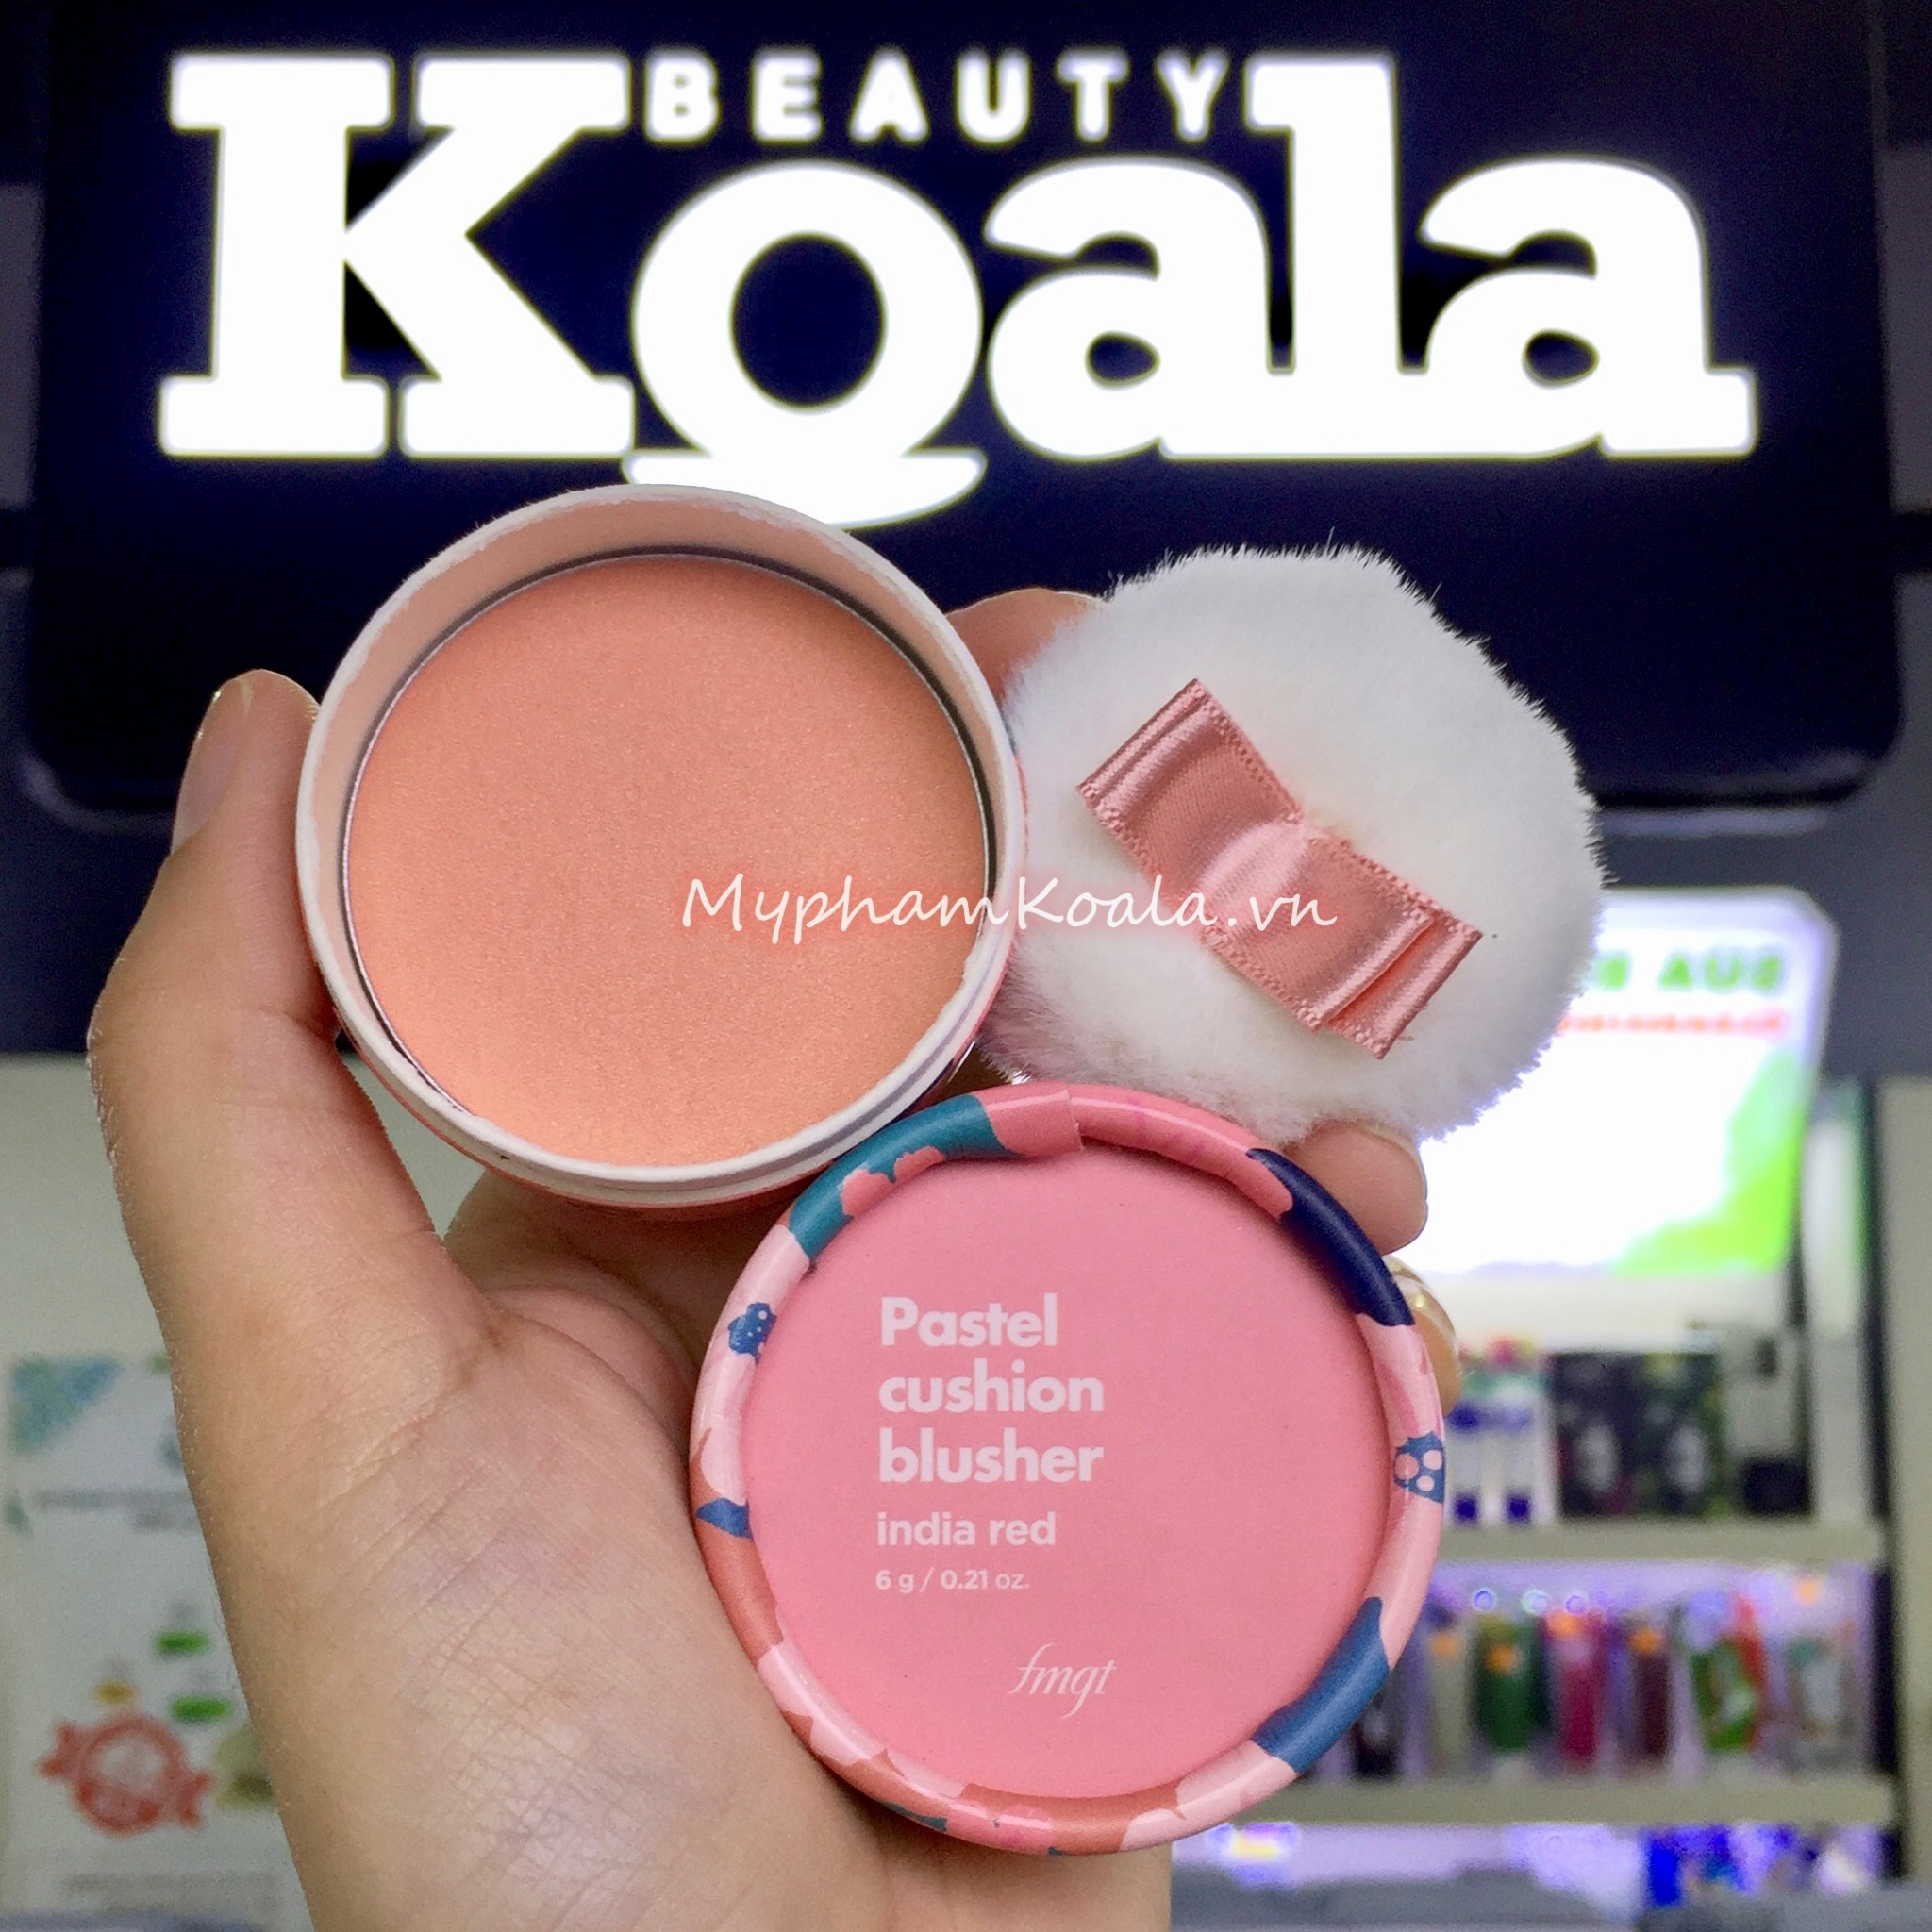 Má Hồng The Face Shop fmgt Pastel Cushion Blusher